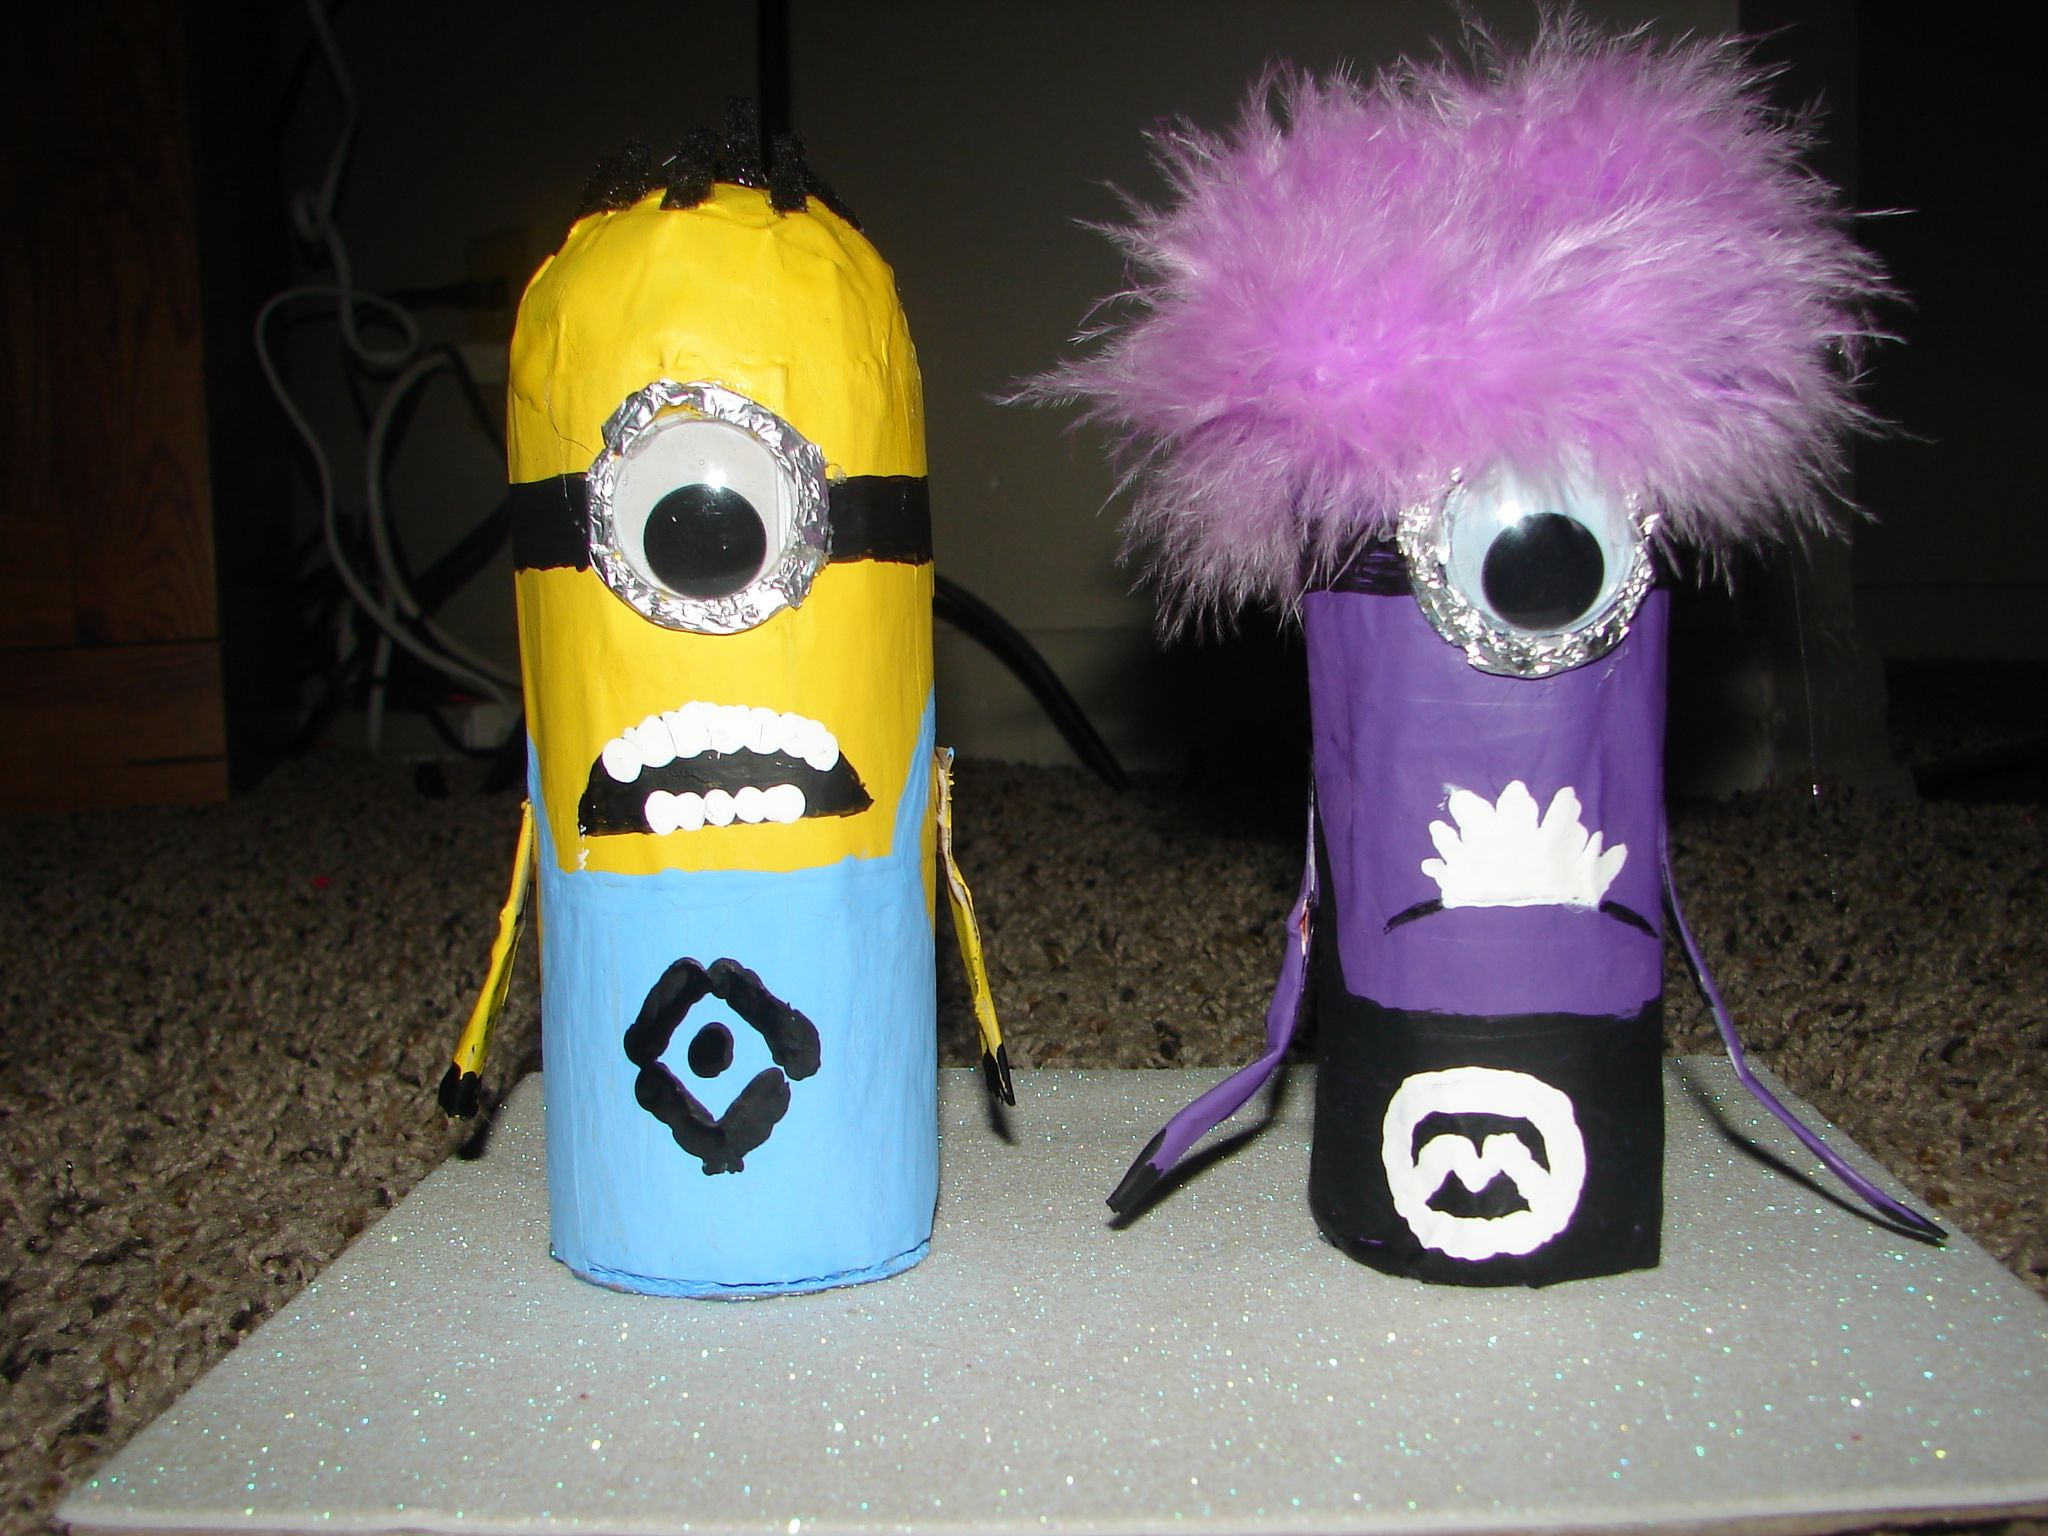 Paper mache minions made from toliet paper rolls and newpapers my paper mache minions made from toliet paper rolls and newpapers my son nathan and i toilet paper roll jeuxipadfo Images